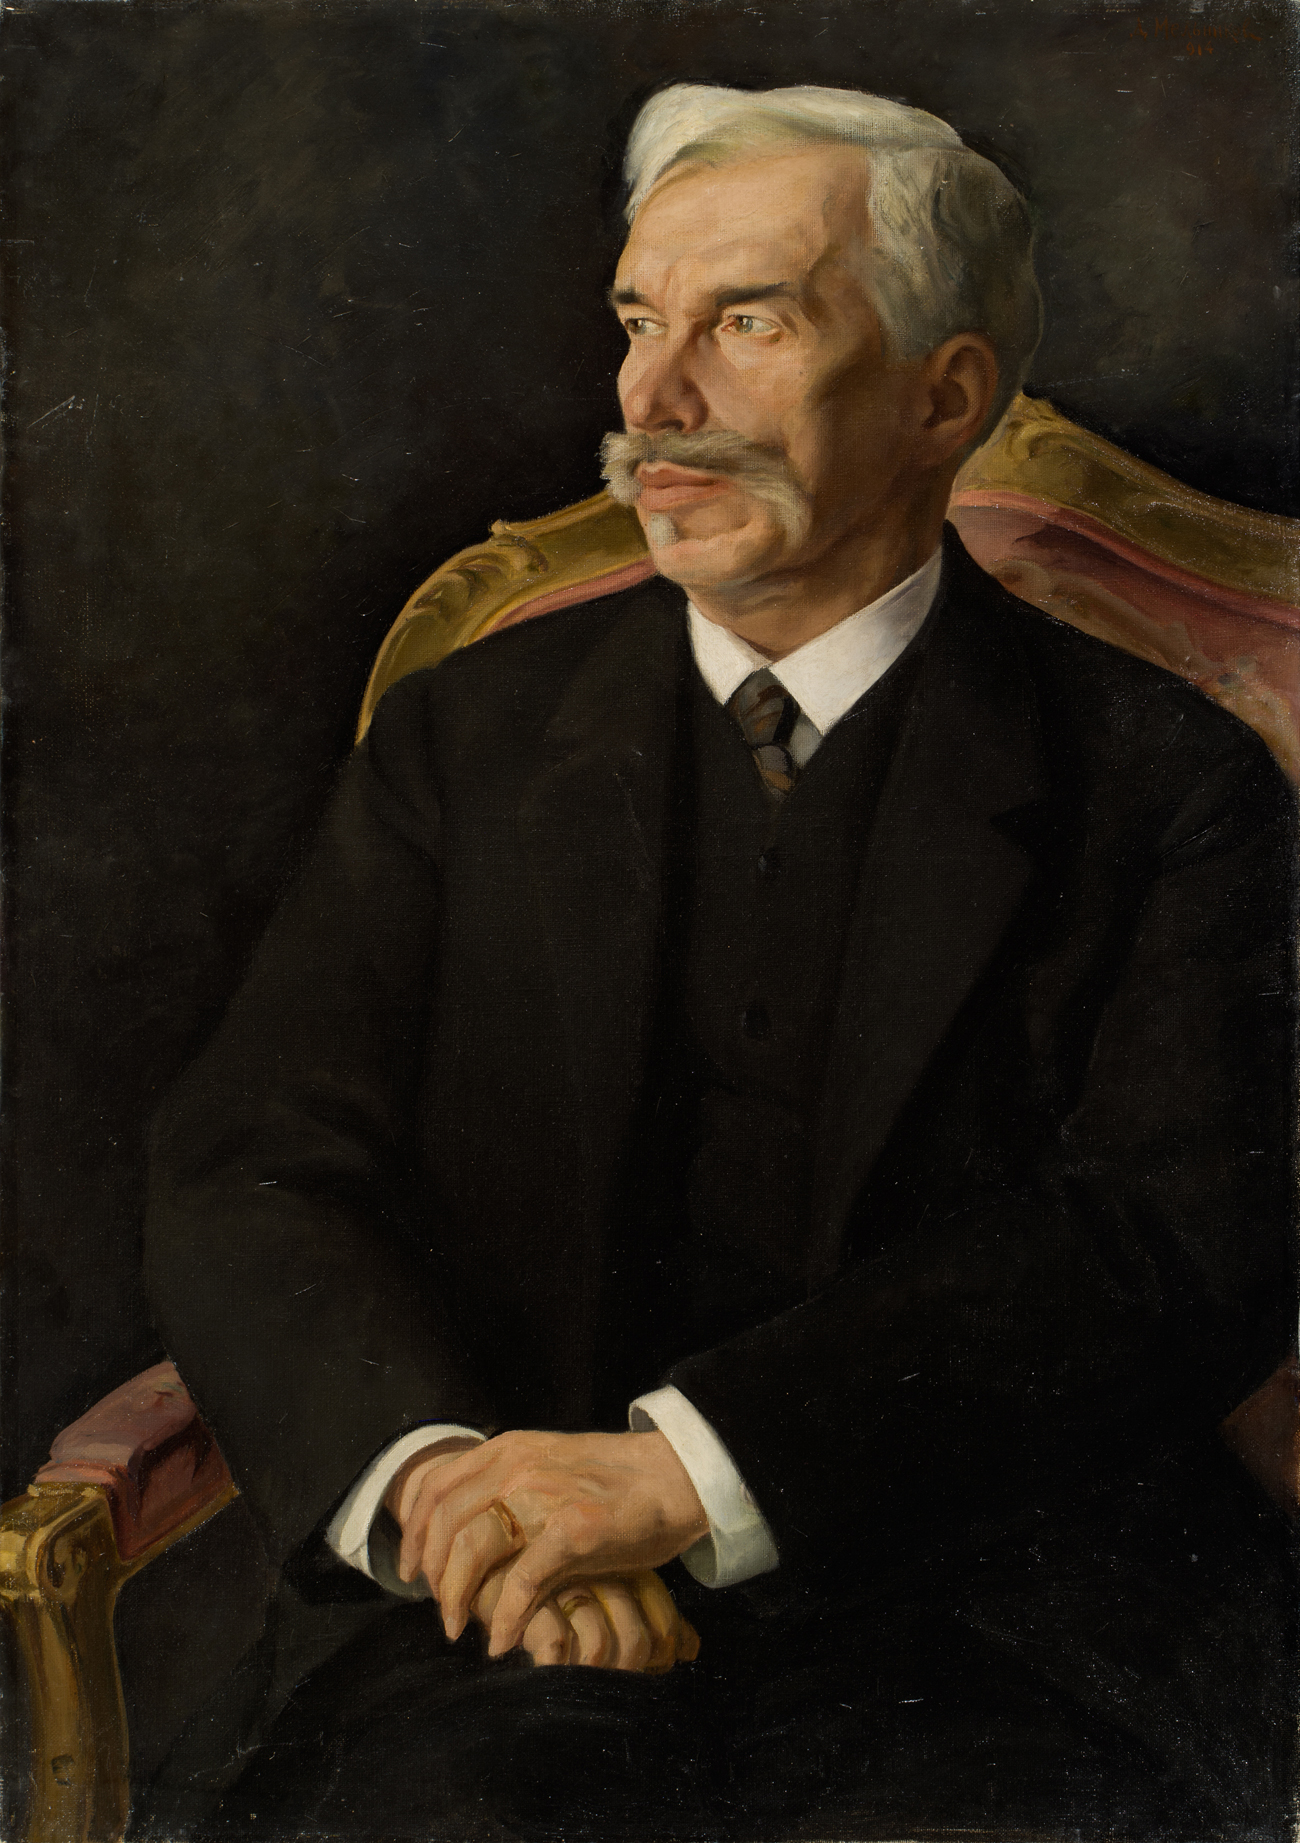 A portrait of Sergei Shchukin by Dmitry Melnikov. 1914